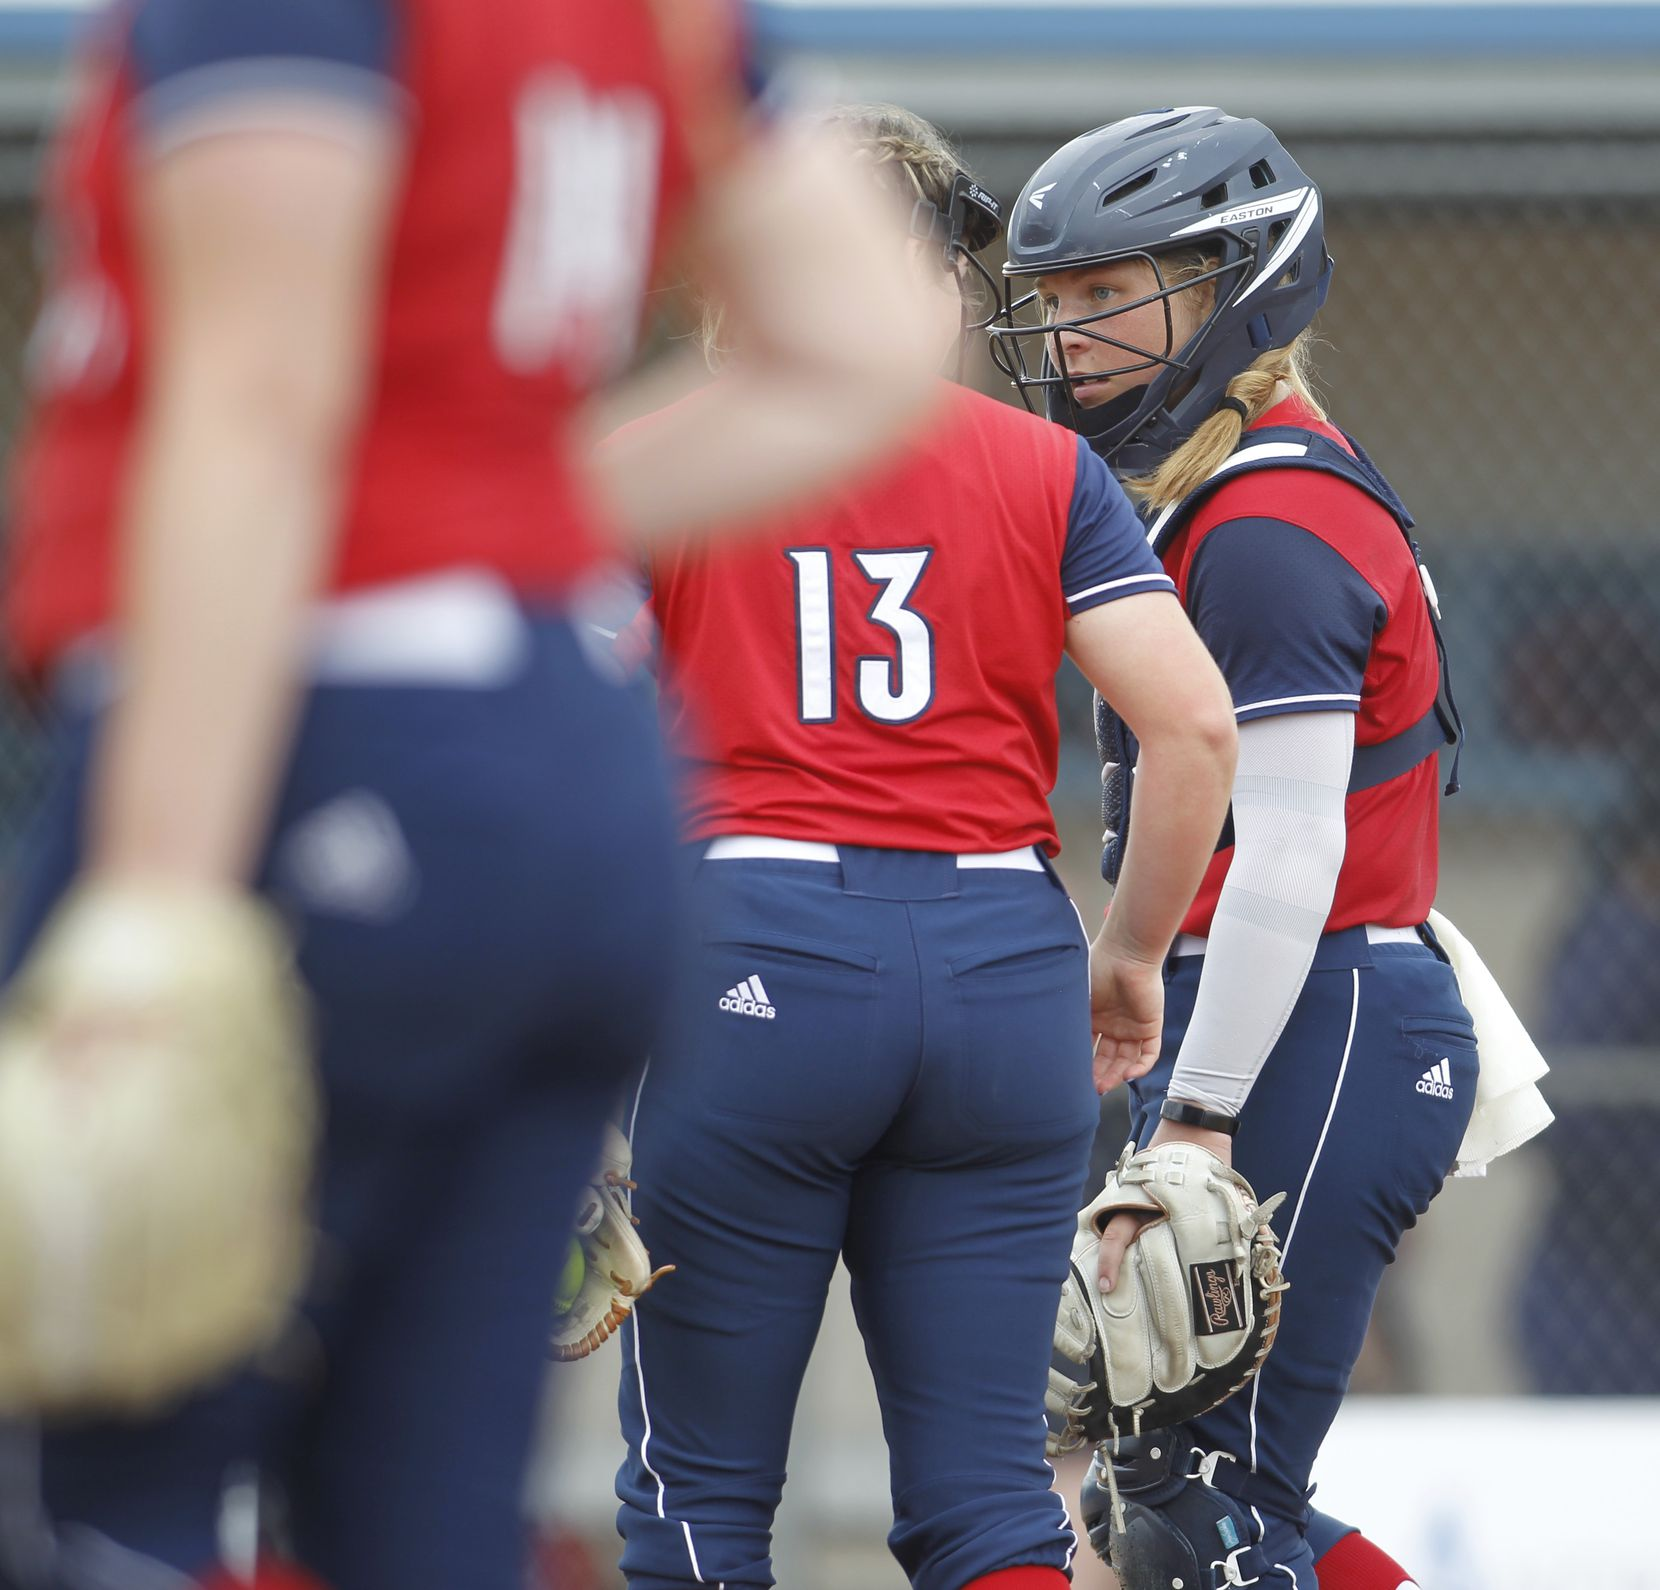 Plano John Paul ll catcher Aubrey Hutzler (6) speaks with pitcher Emily Jonte (13) during a break in the action of the 4th inning of their game against Antonian College Prep. The Cardinals won the state softball title with a 4-2 victory. The two teams played their TAPPS state Division 1 championship game at Waco ISD Softball Complex in Waco on May 15, 2021.